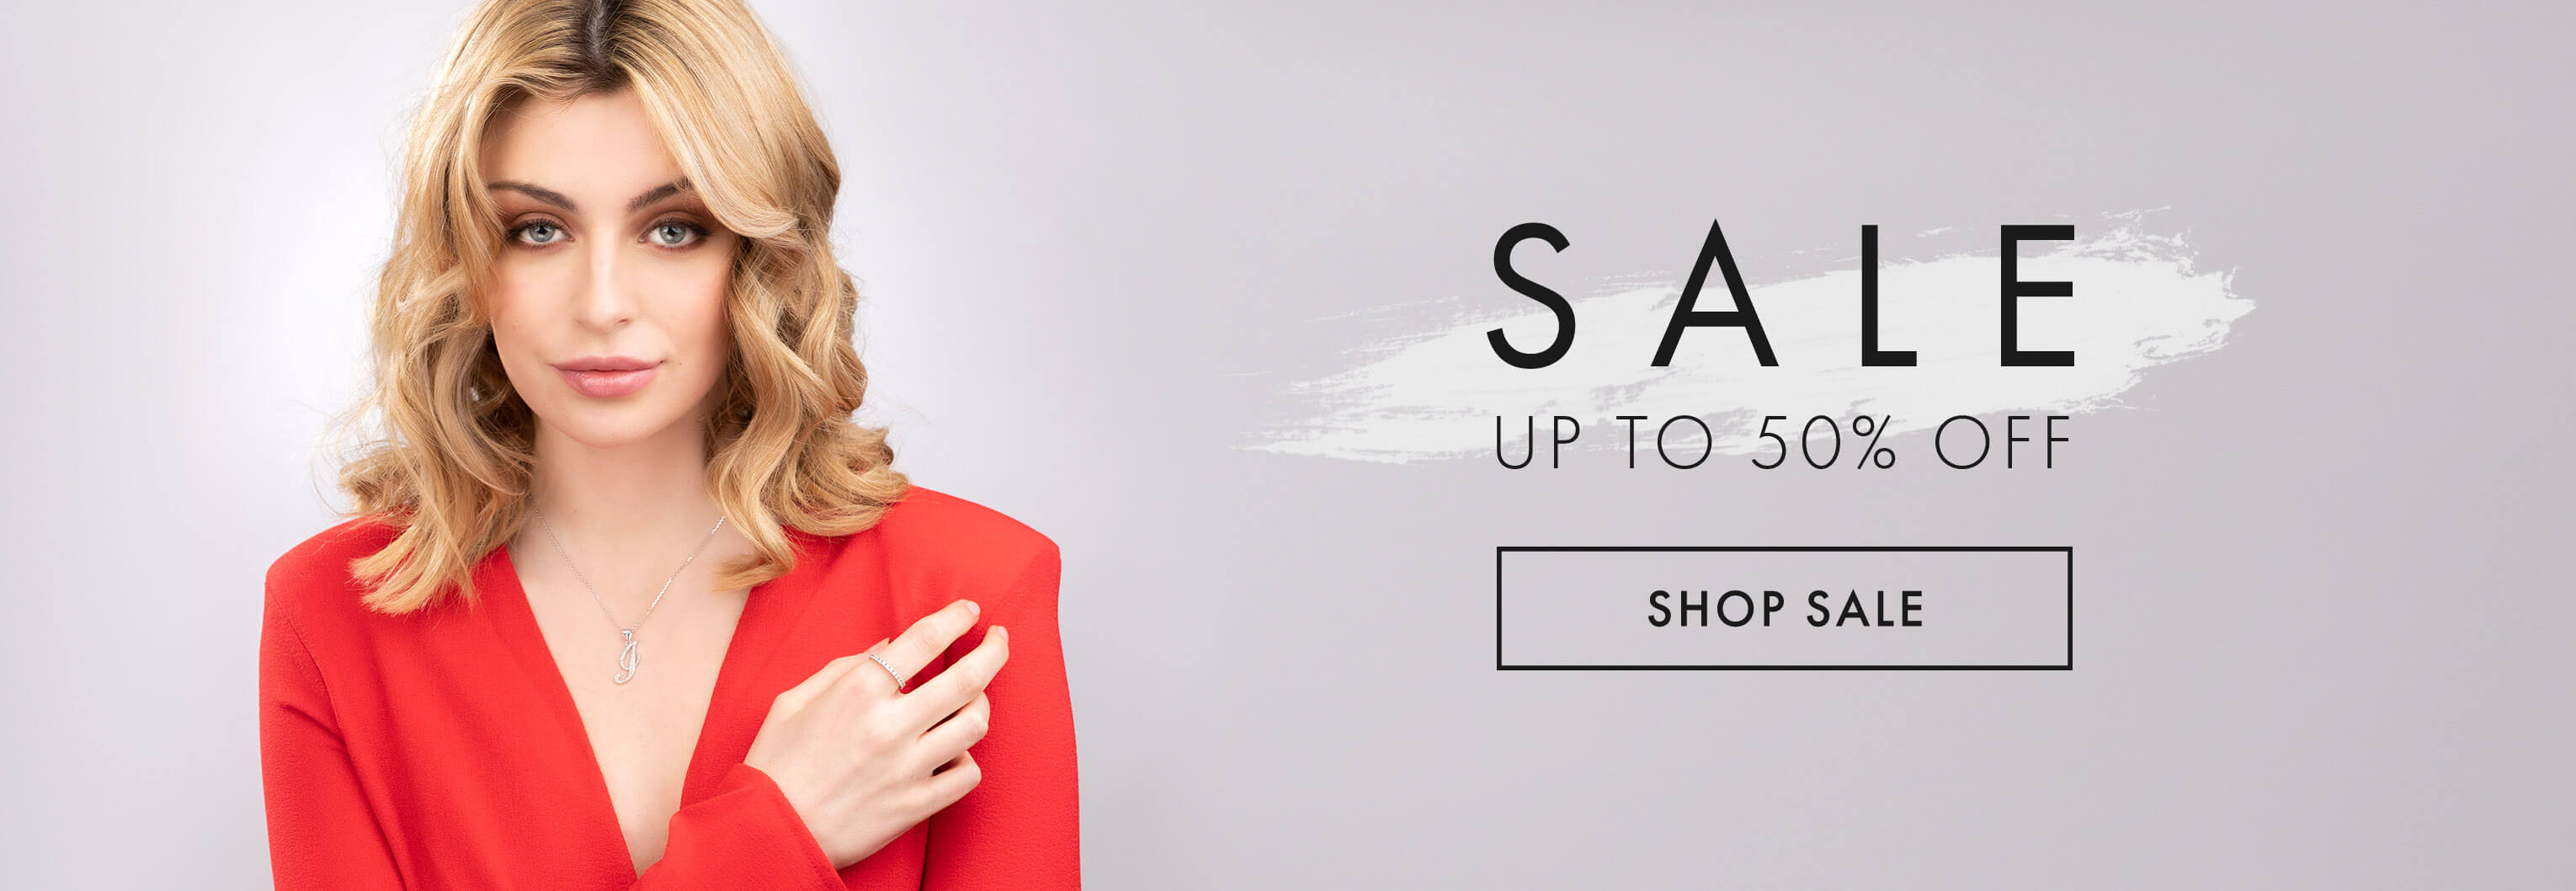 Sale - Up To 50% Off